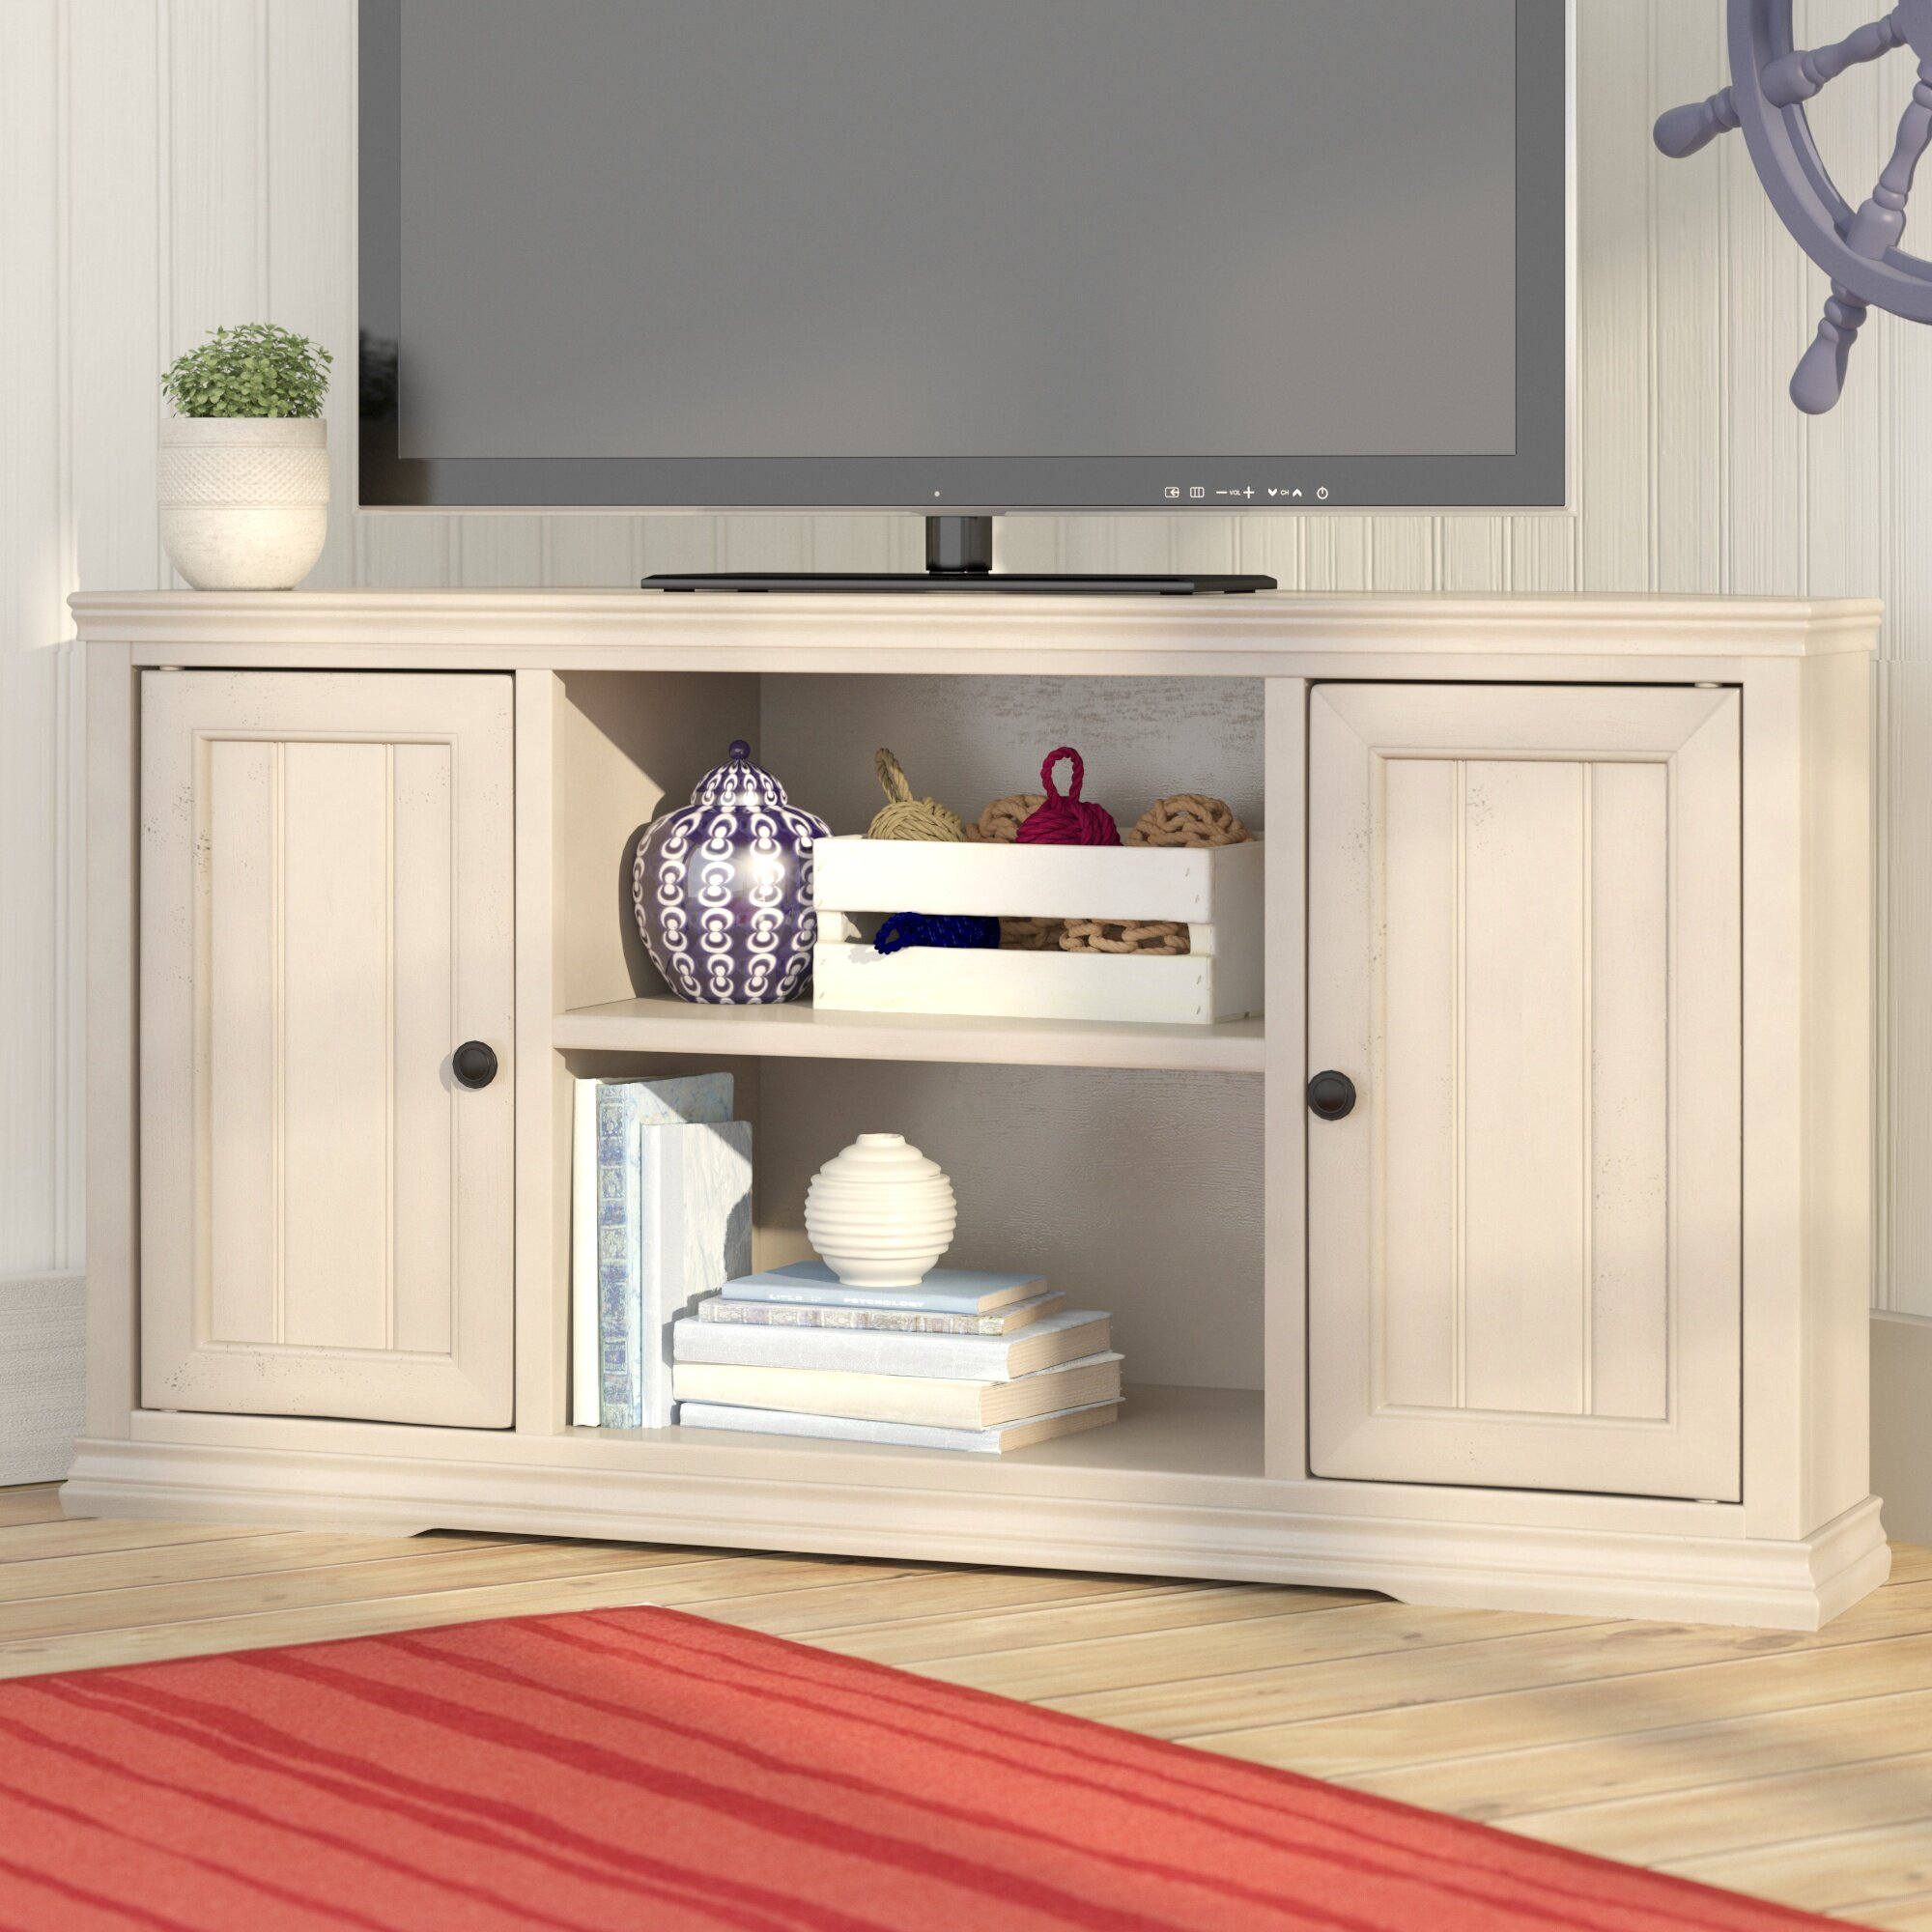 Beachcrest Home Helene Corner Tv Stand For Tvs Up To 55 Reviews Wayfair